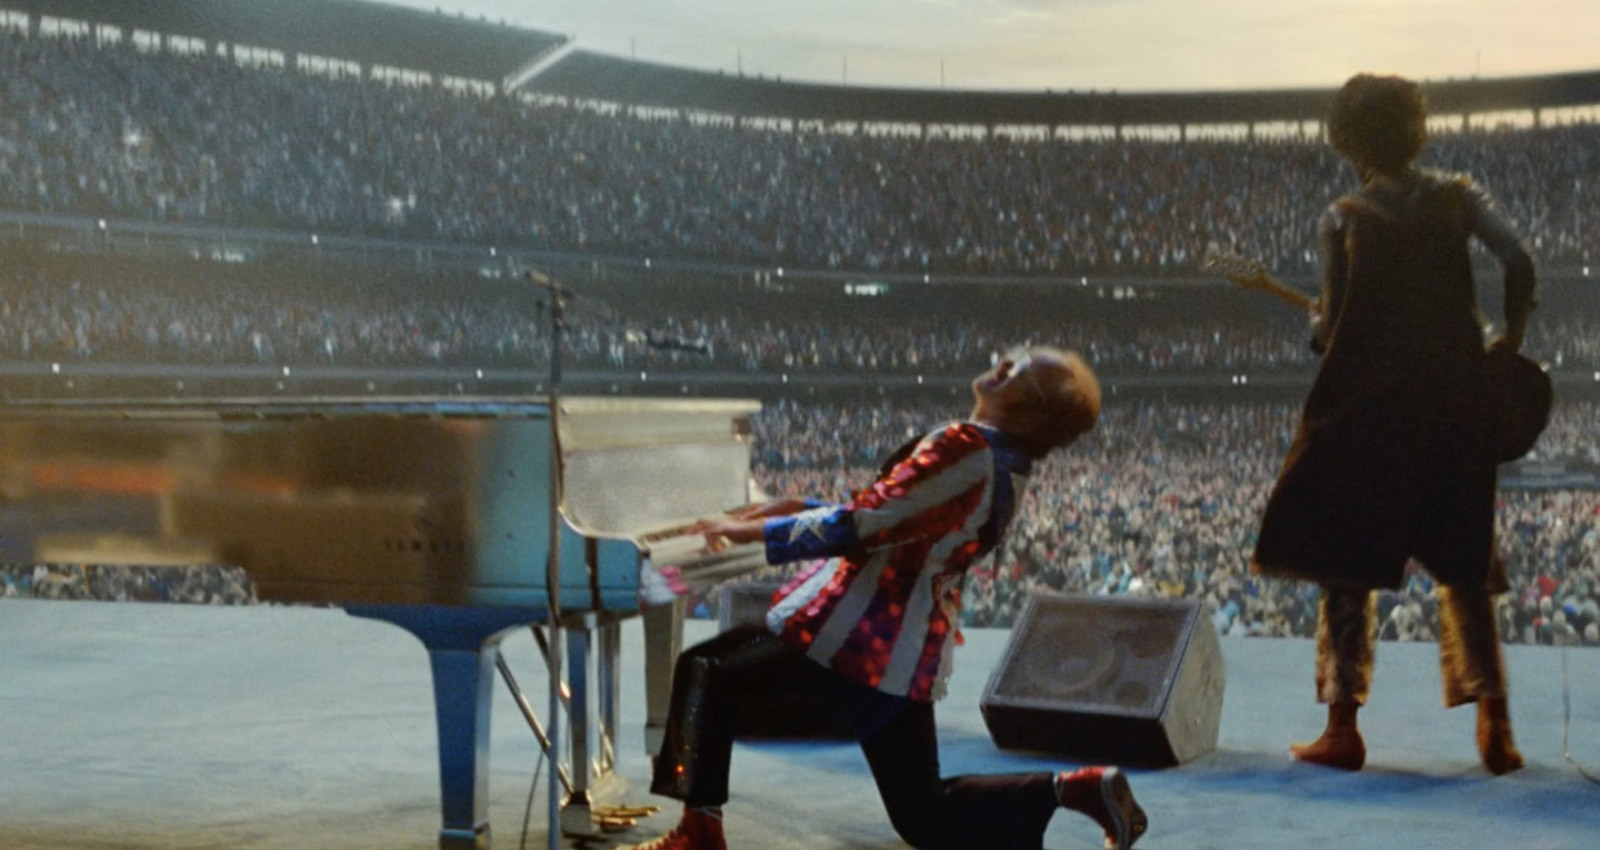 The Boy & The Piano